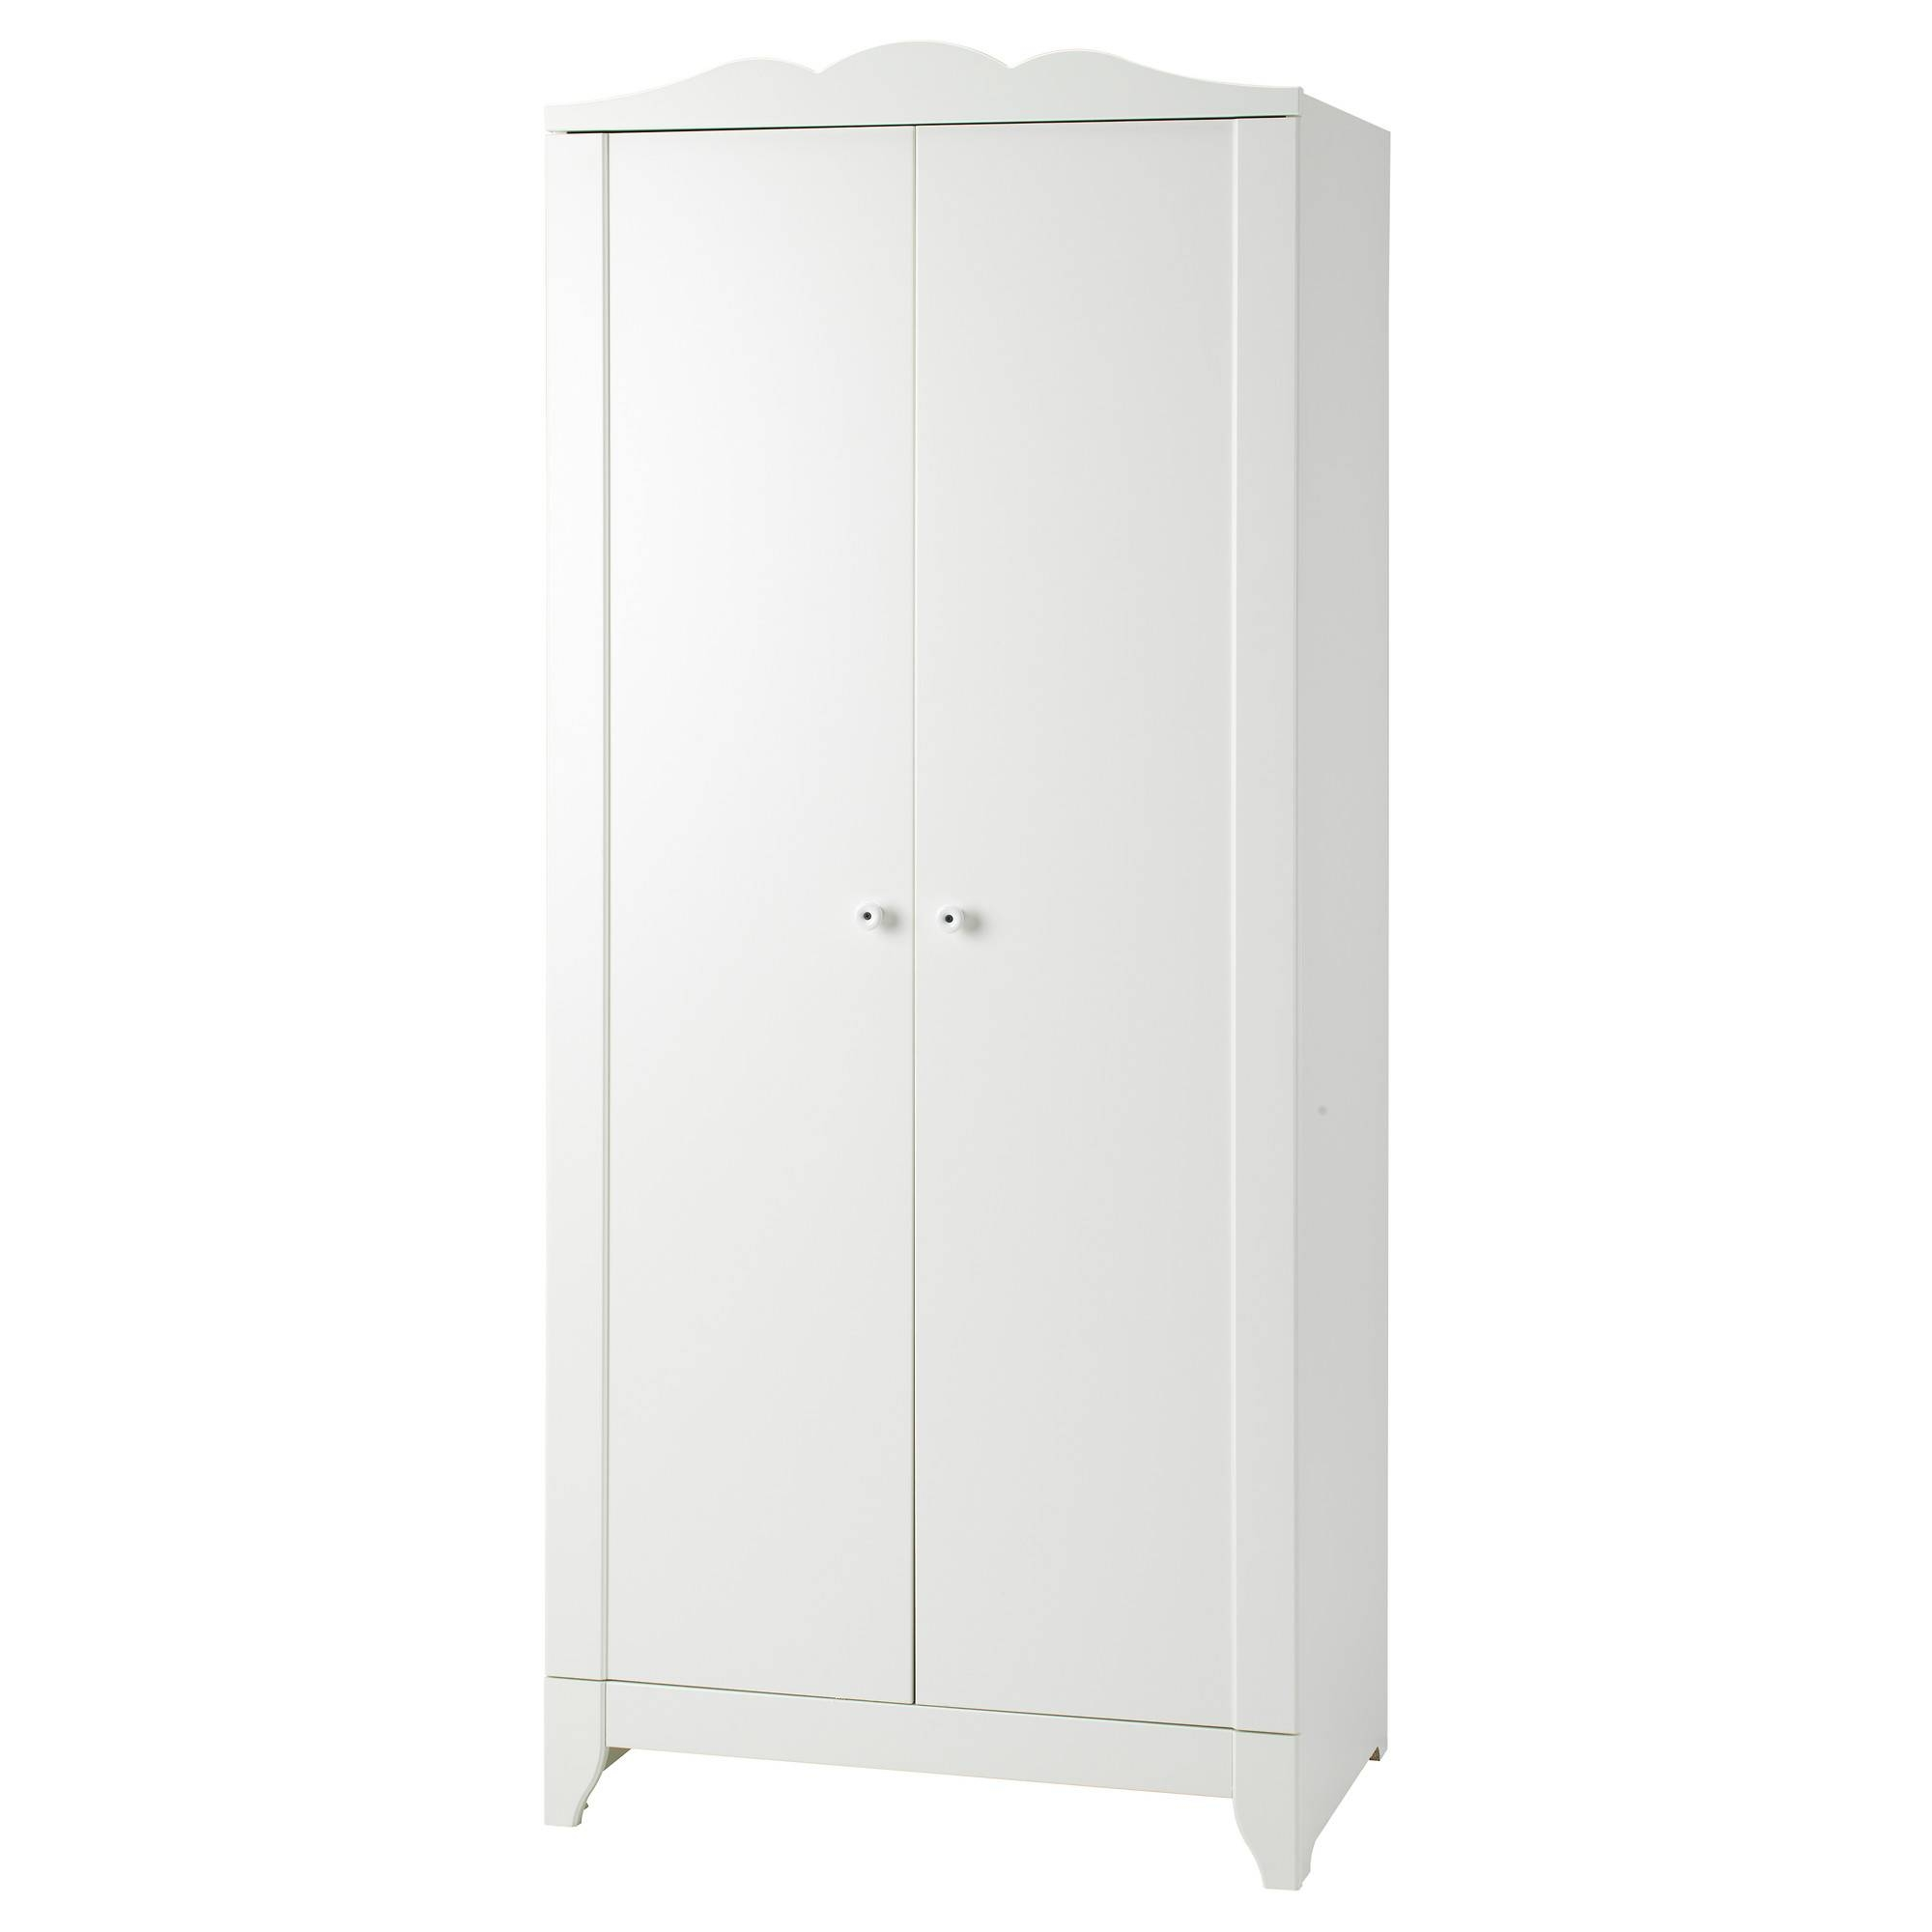 Children's Wardrobes - Nursery Wardrobes - Ikea with Childrens Double Rail Wardrobes (Image 14 of 30)